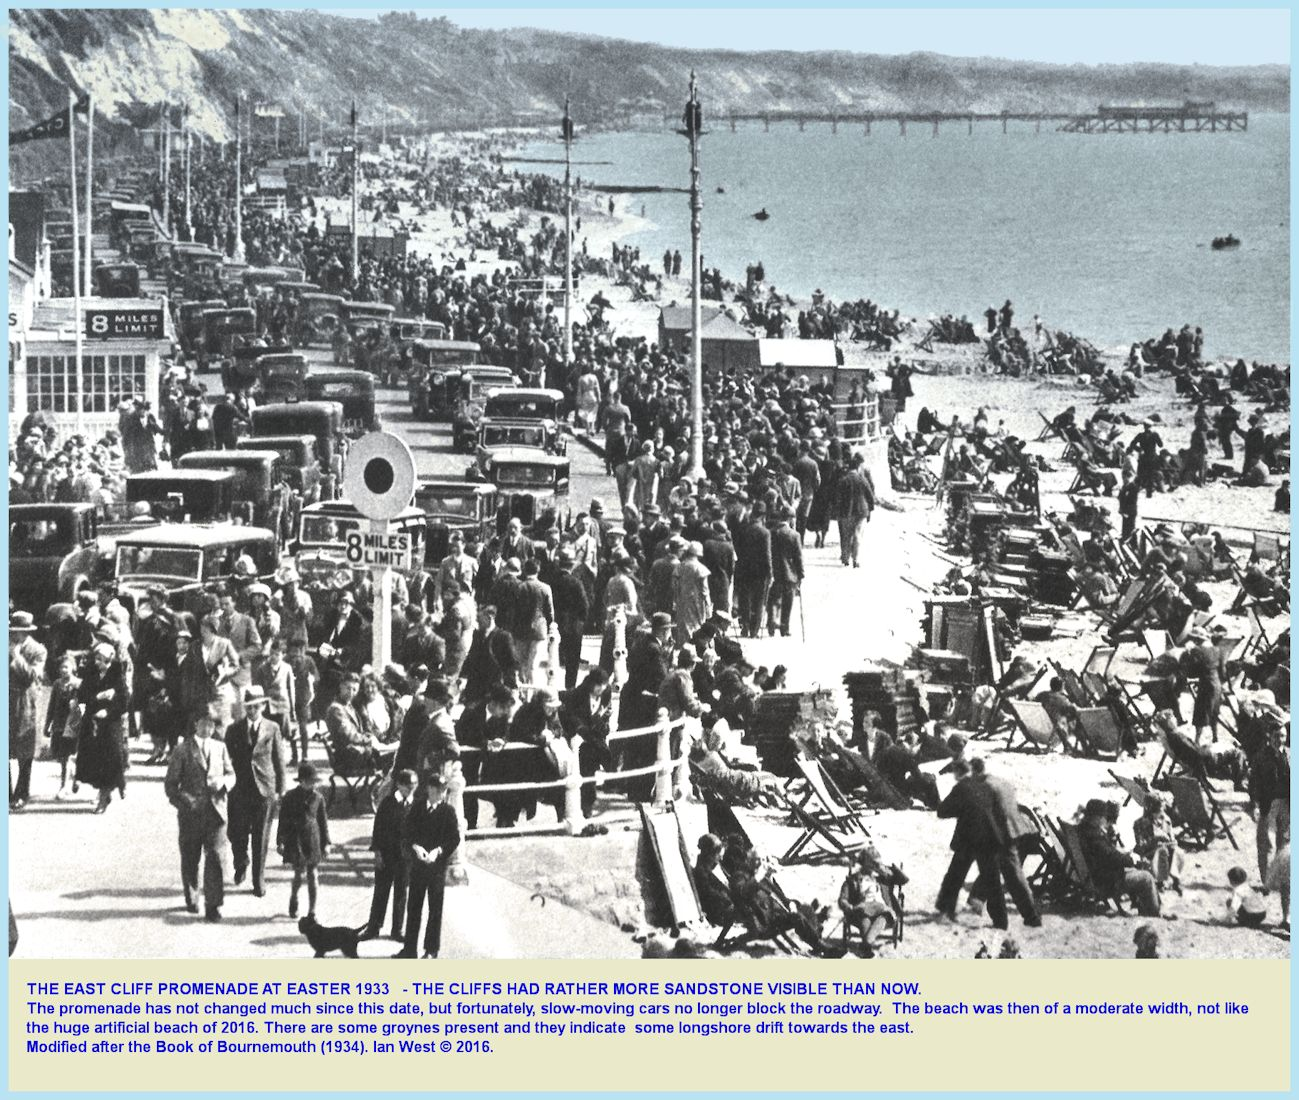 The Bournemouth East Cliff and Undercliff Drive at Easter 1933, modified by Ian West